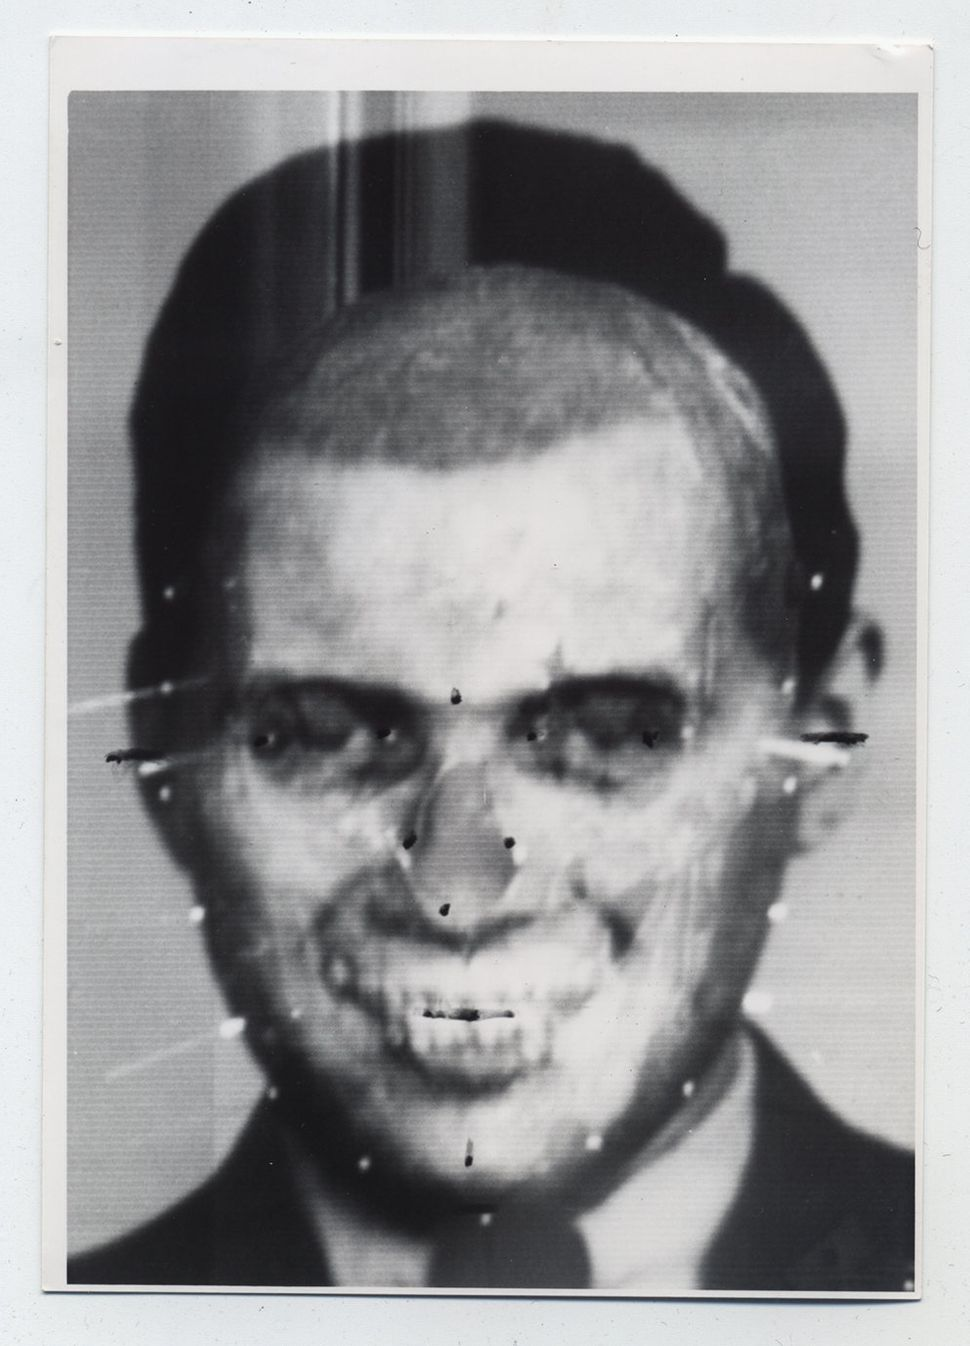 Video montage produced using photographs of Mengele and of his skull in Richard Helmer's demonstrations of the technique of s